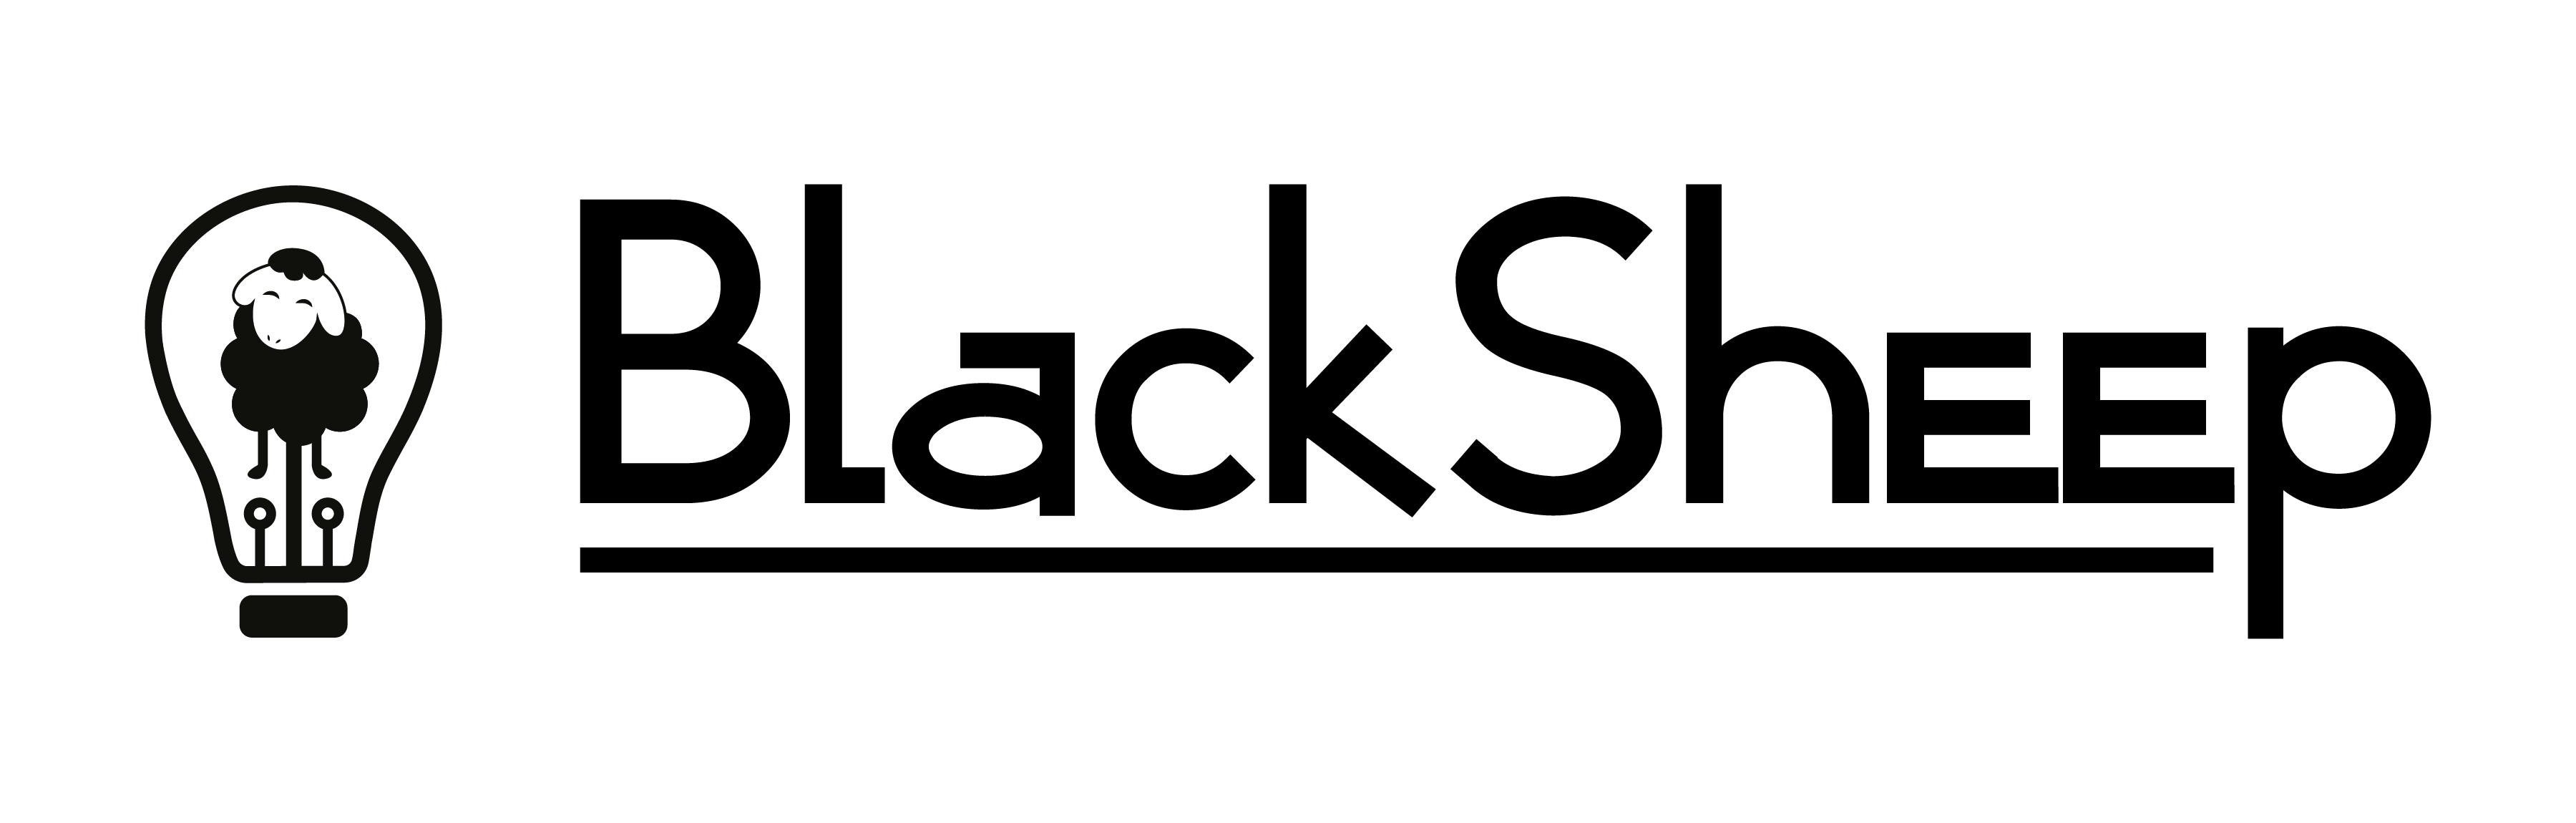 Black Sheep Technologies, LLC